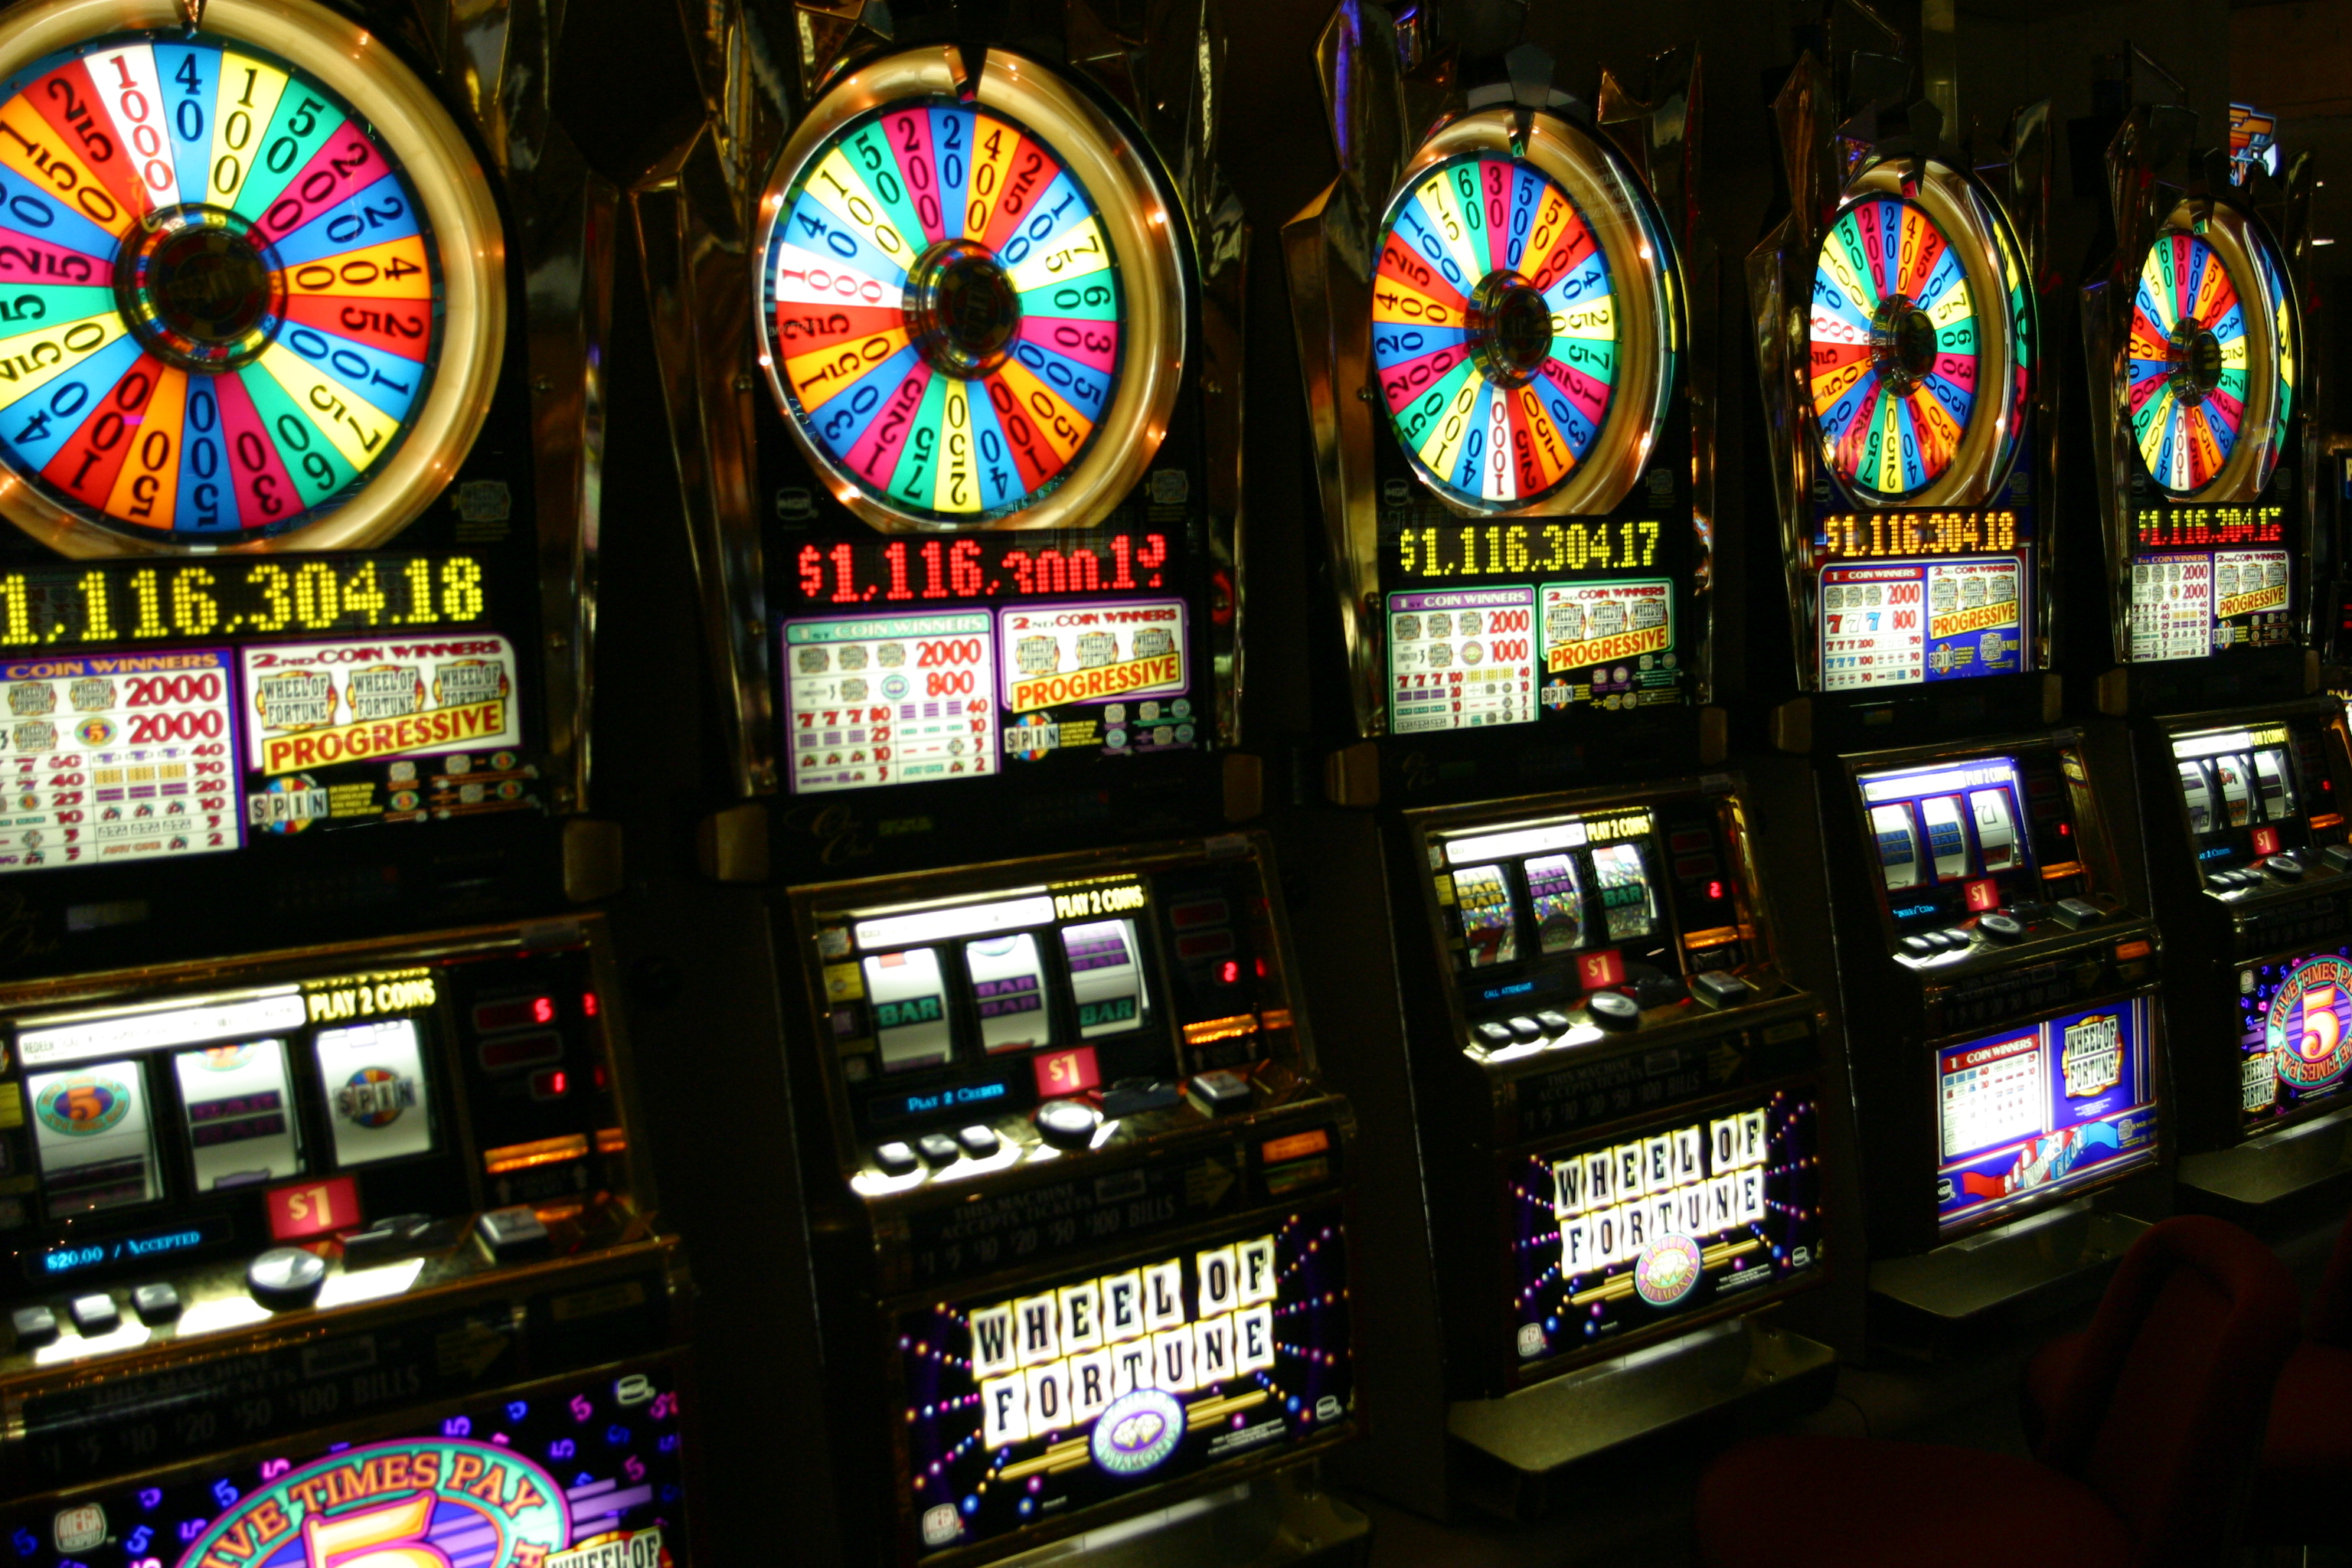 slots and roulette shiny in casino